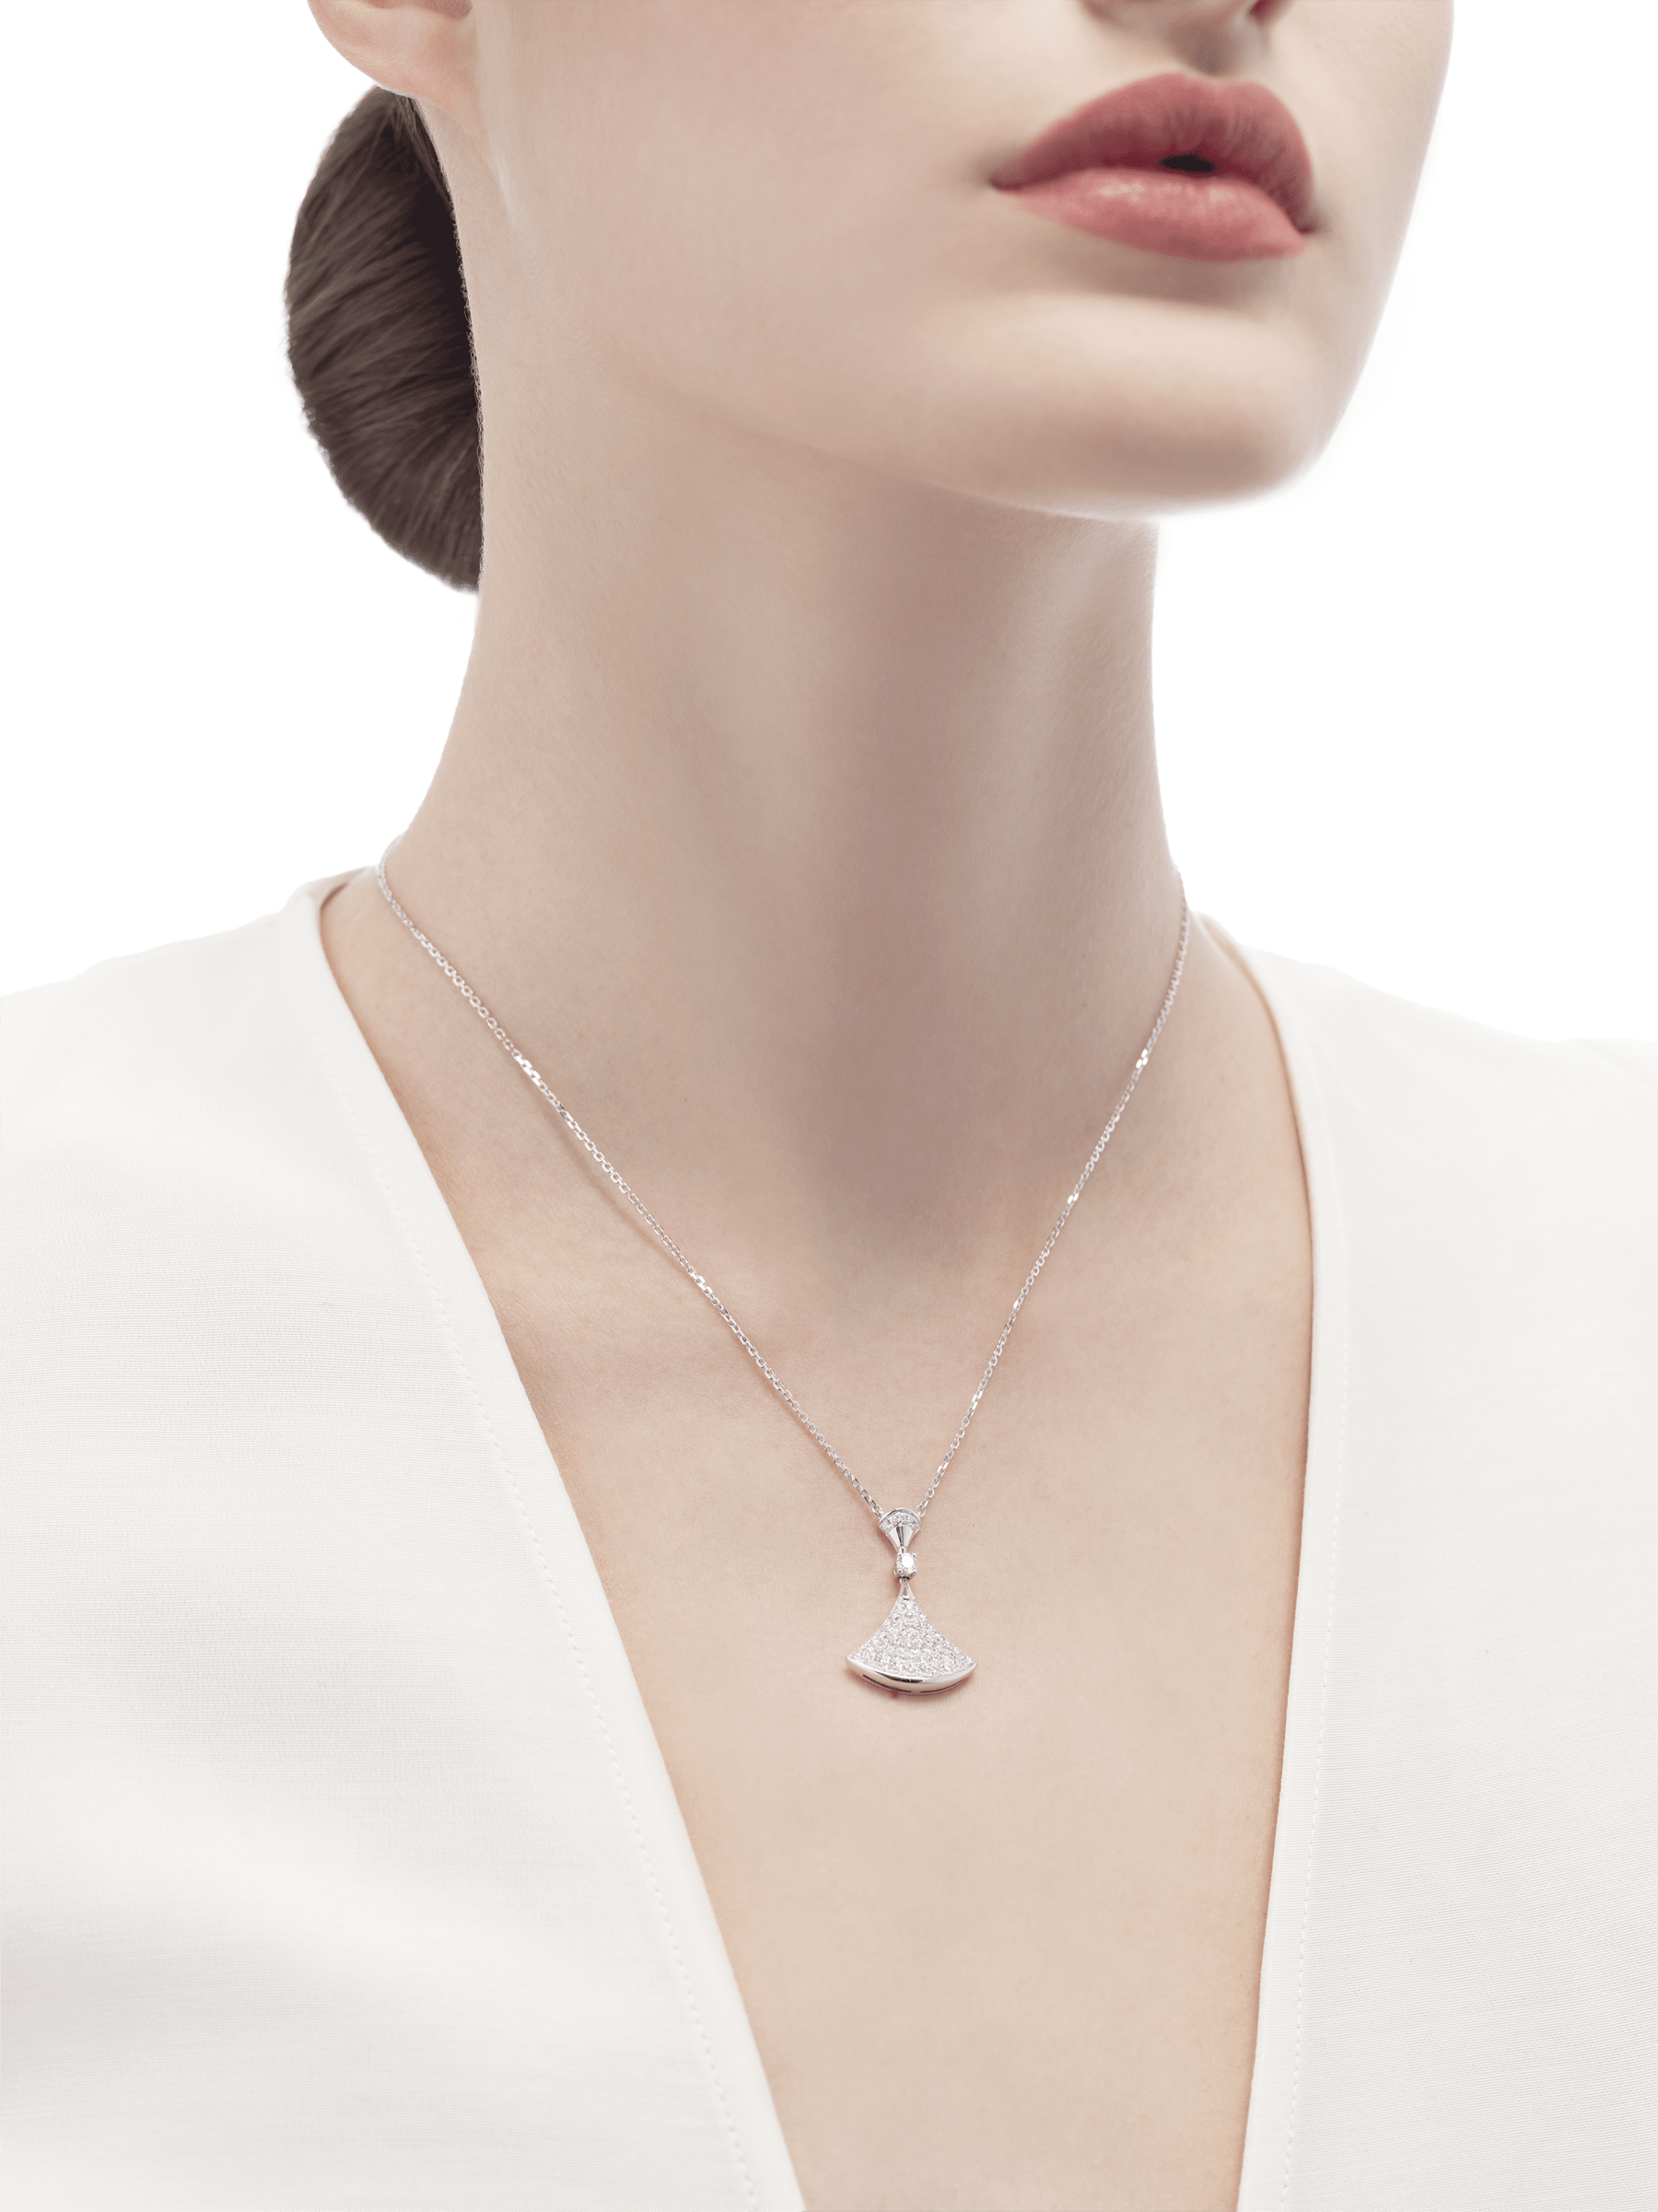 DIVAS' DREAM necklace in 18 kt white gold with pendant set with one diamond and pavé diamonds. 350066 image 3